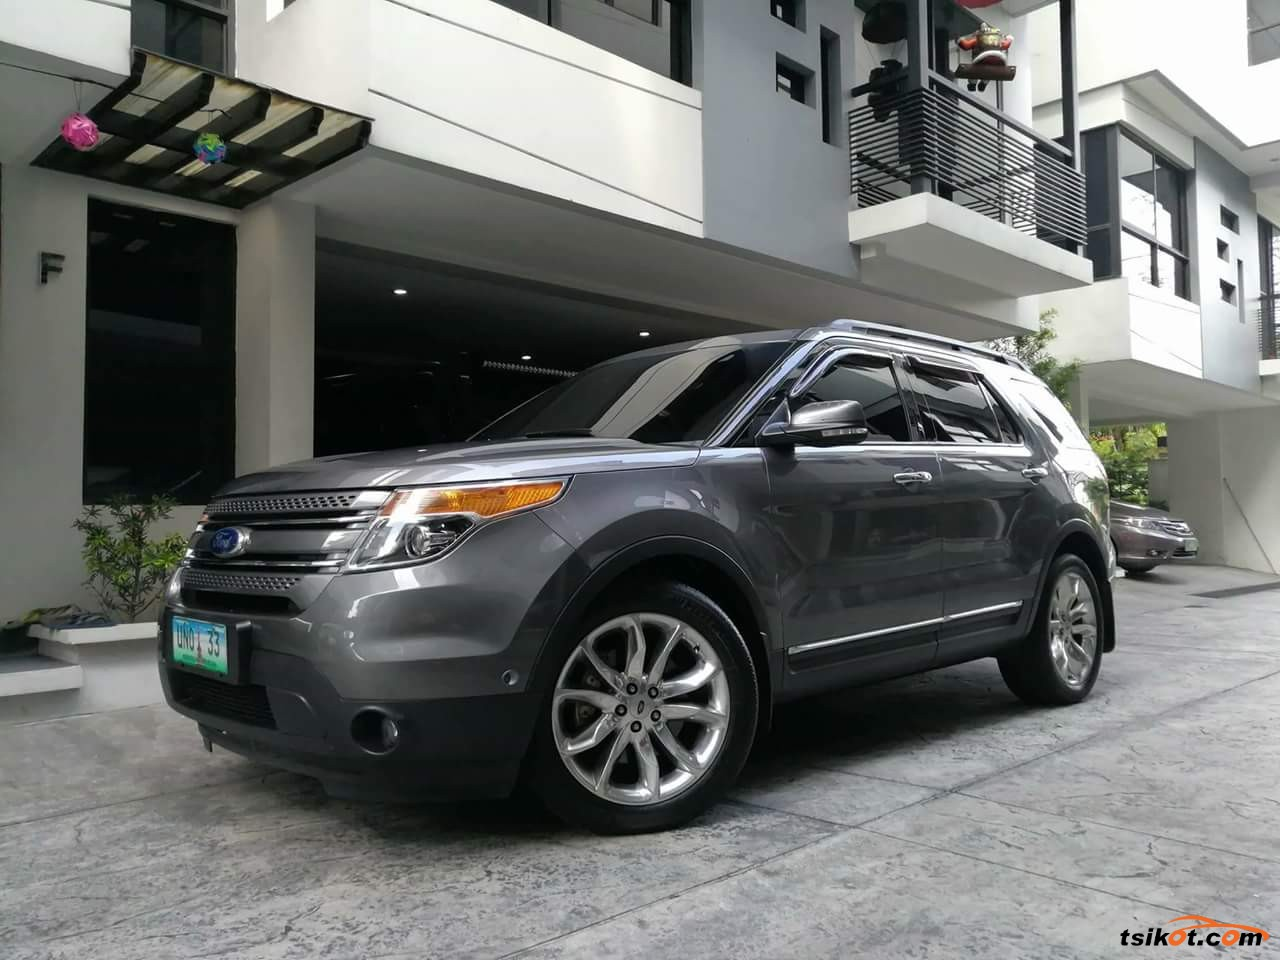 ford explorer 2013 car for sale metro manila. Black Bedroom Furniture Sets. Home Design Ideas